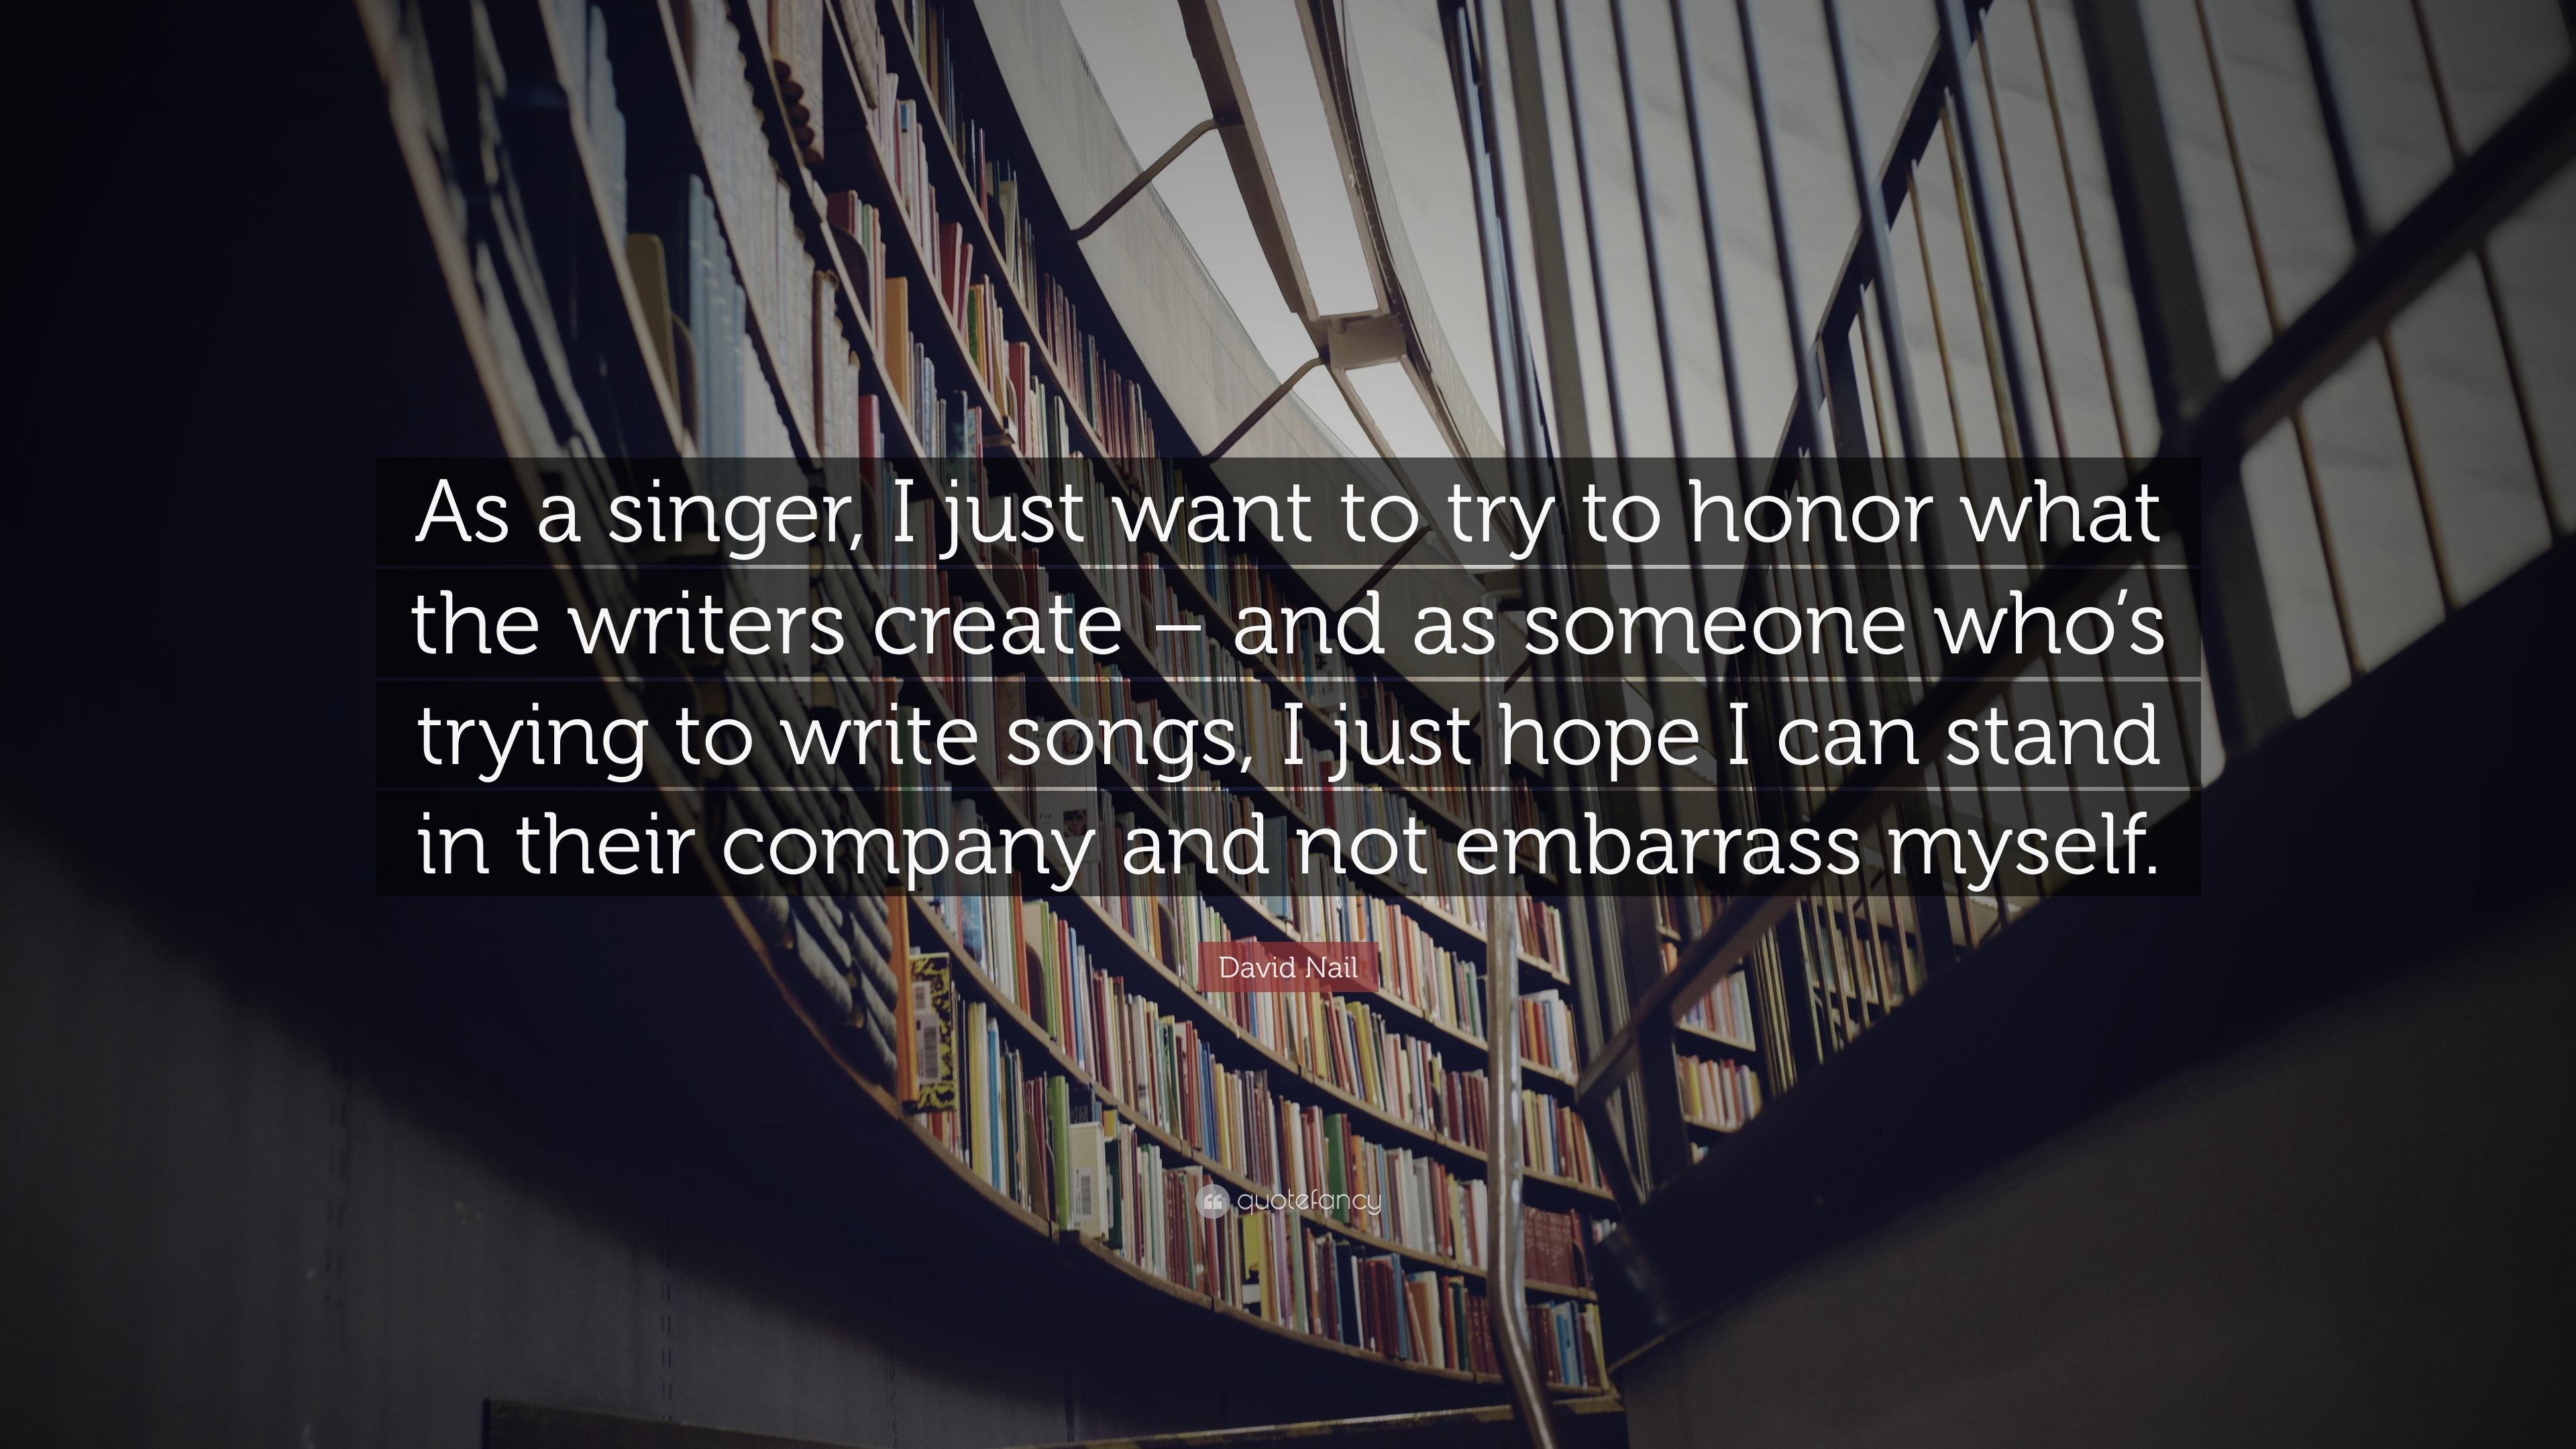 David Nail Quotes (19 wallpapers) - Quotefancy